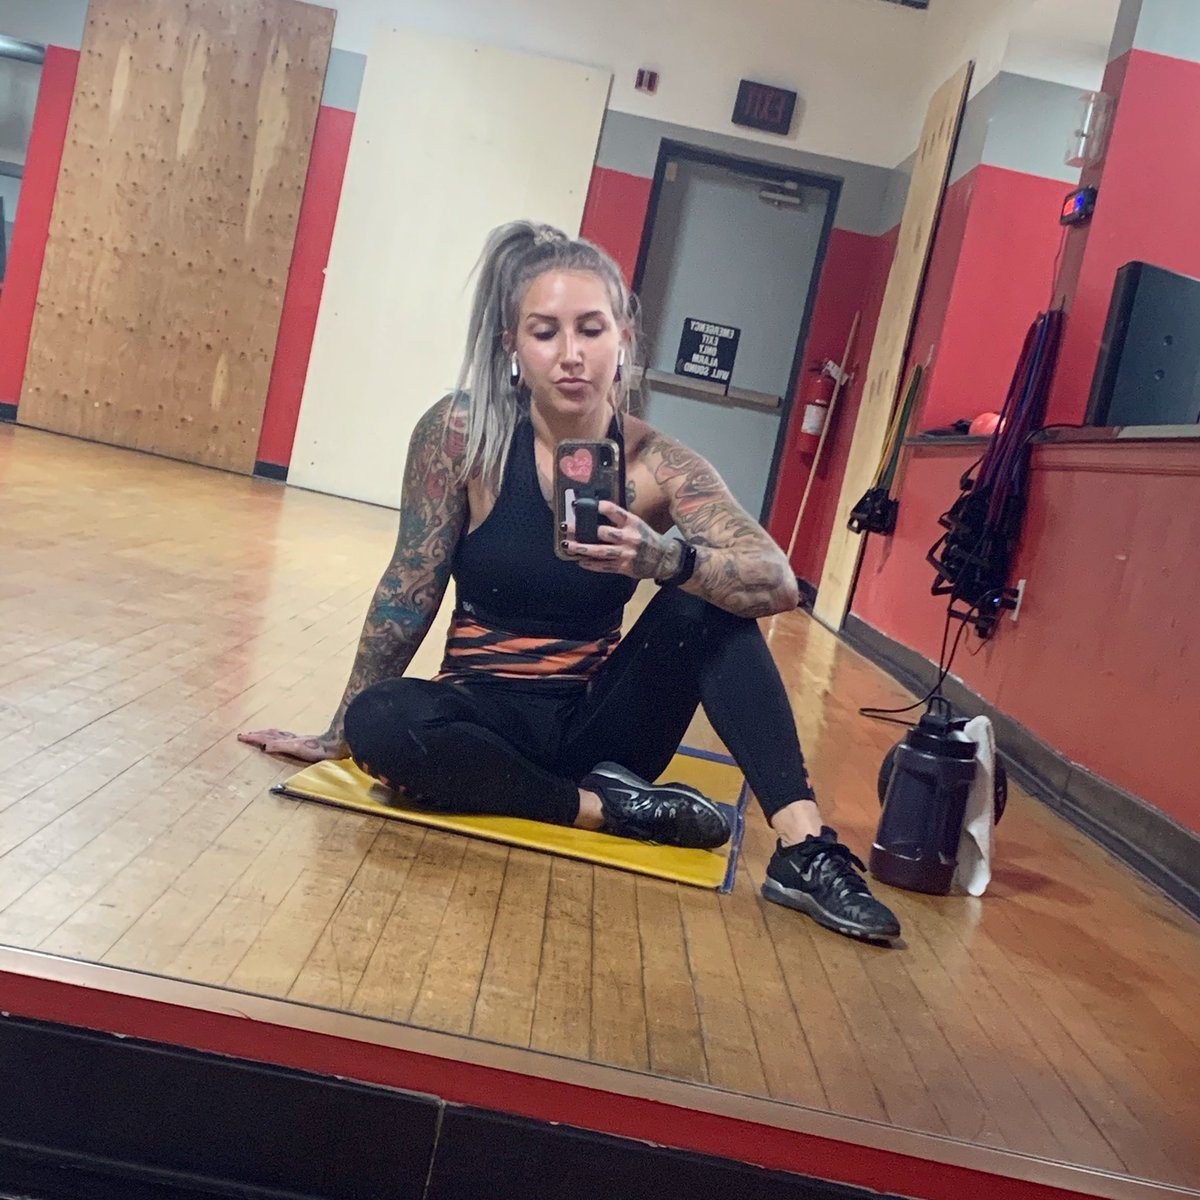 Feeling super lazy today but made it to the gym eventually 😅 #wrestling #prowrestling #womenswrestling #wwe #wwenxt #nxt #aew #wwesmackdown #wweraw #fitness #gym #lifestyle #fitspo #fitfam #girlswholift #girlswithtattoos #tattoos #sunday #SundayFunday